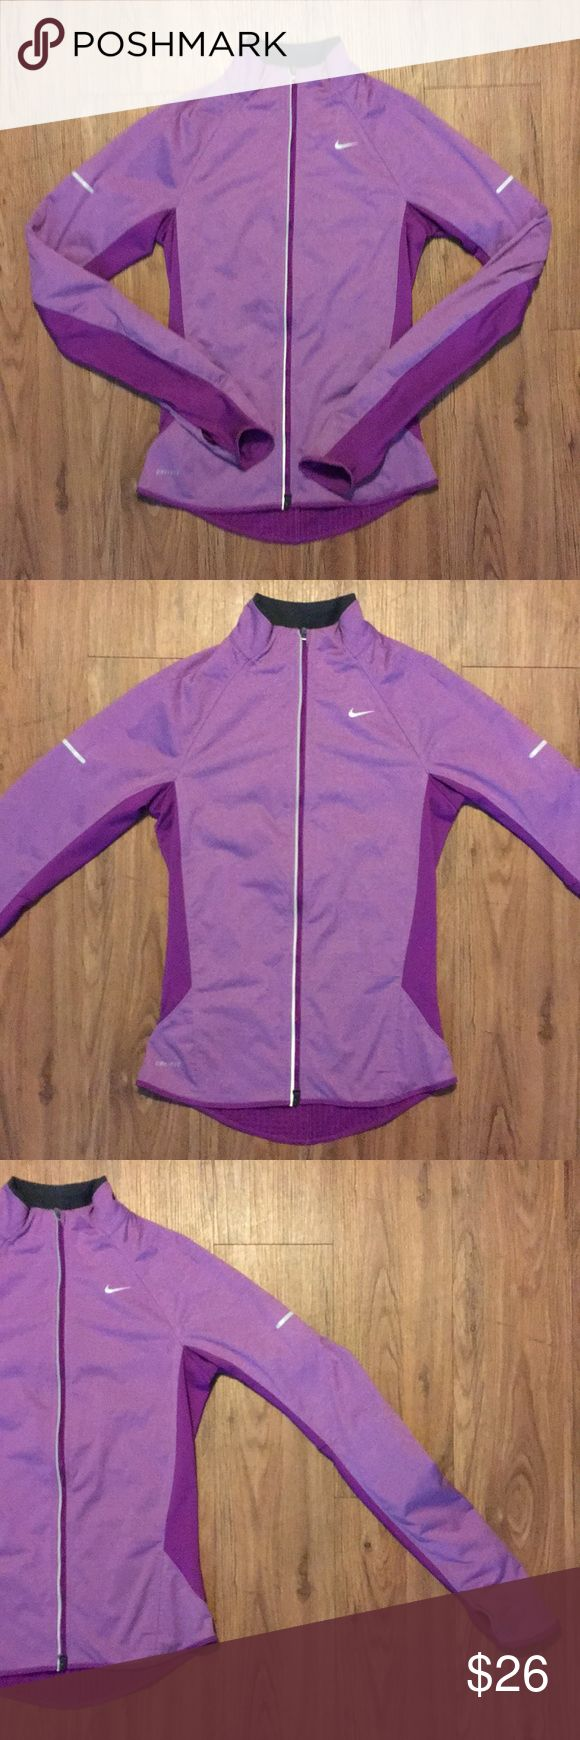 "Nike Women Fitted Jacket XS Purple Element Shield Women's active jacket by Nike  Tag size XS Style: Element Shield Color: heathered purple 100% polyester dual way zipper closure, thumb holes at cuffs, small Pocket with zipper at right lower back. Pre owned in excellent condition.   Sleeve: 30.5"" from base of neck to cuff Chest: 16"" across Hip: 16"" across Length: 23""  Bundle and save!!! Nike Jackets & Coats"